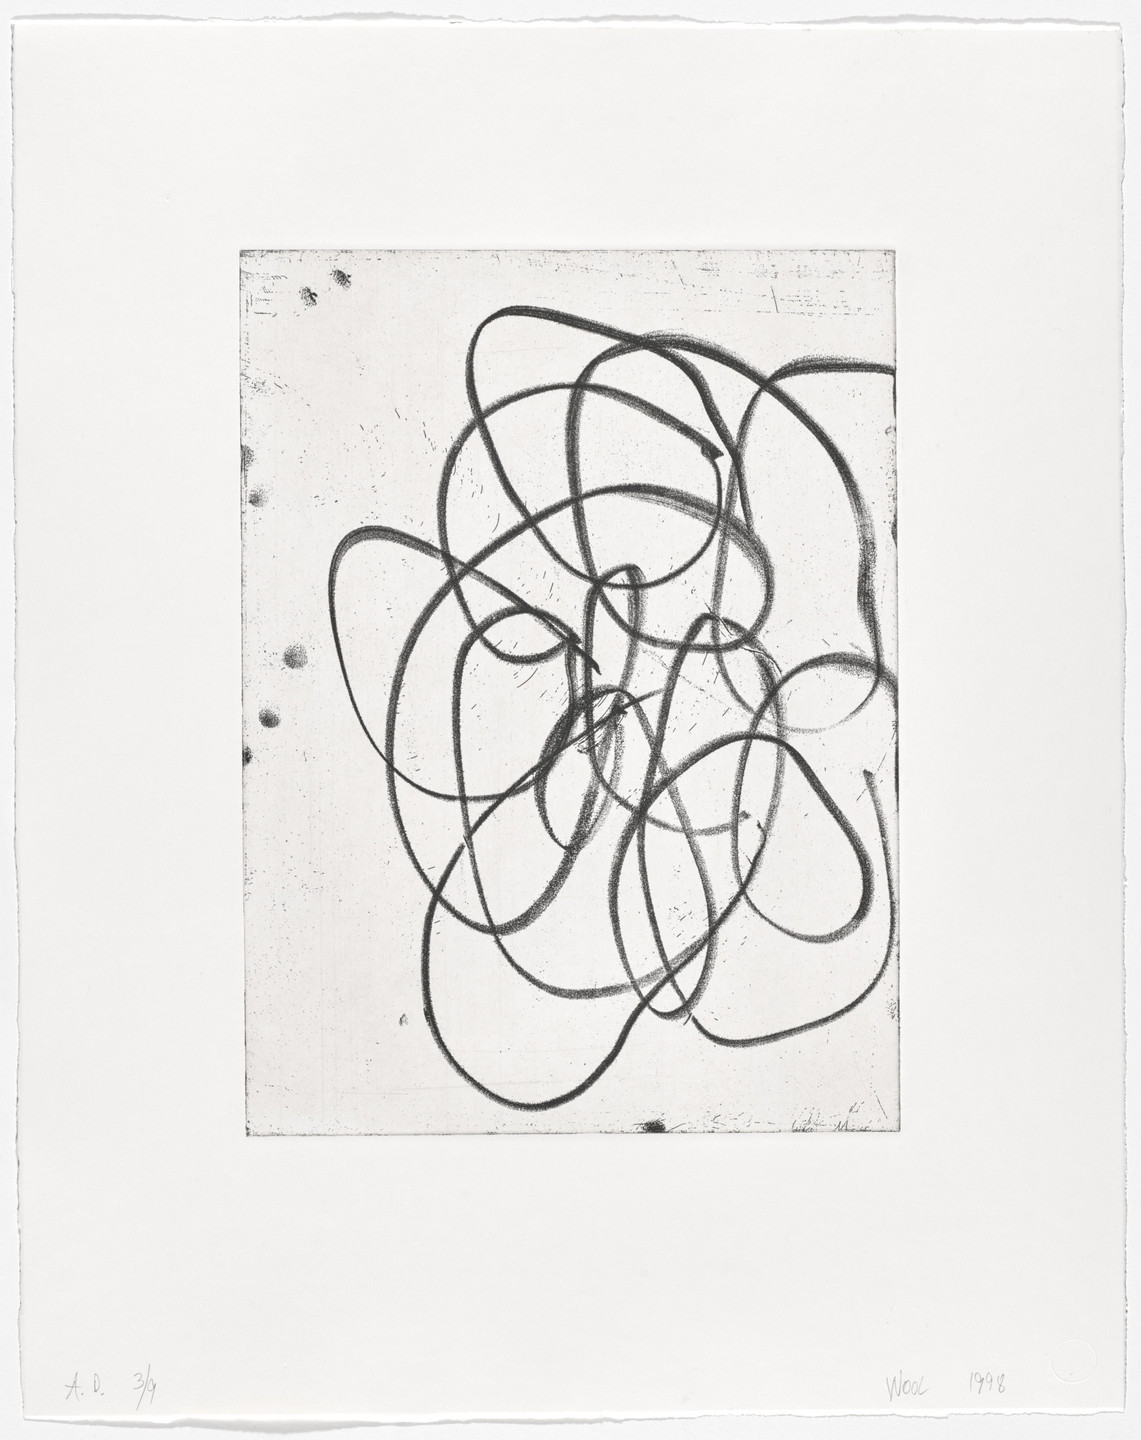 Christopher Wool. Untitled from an untitled series. 1998